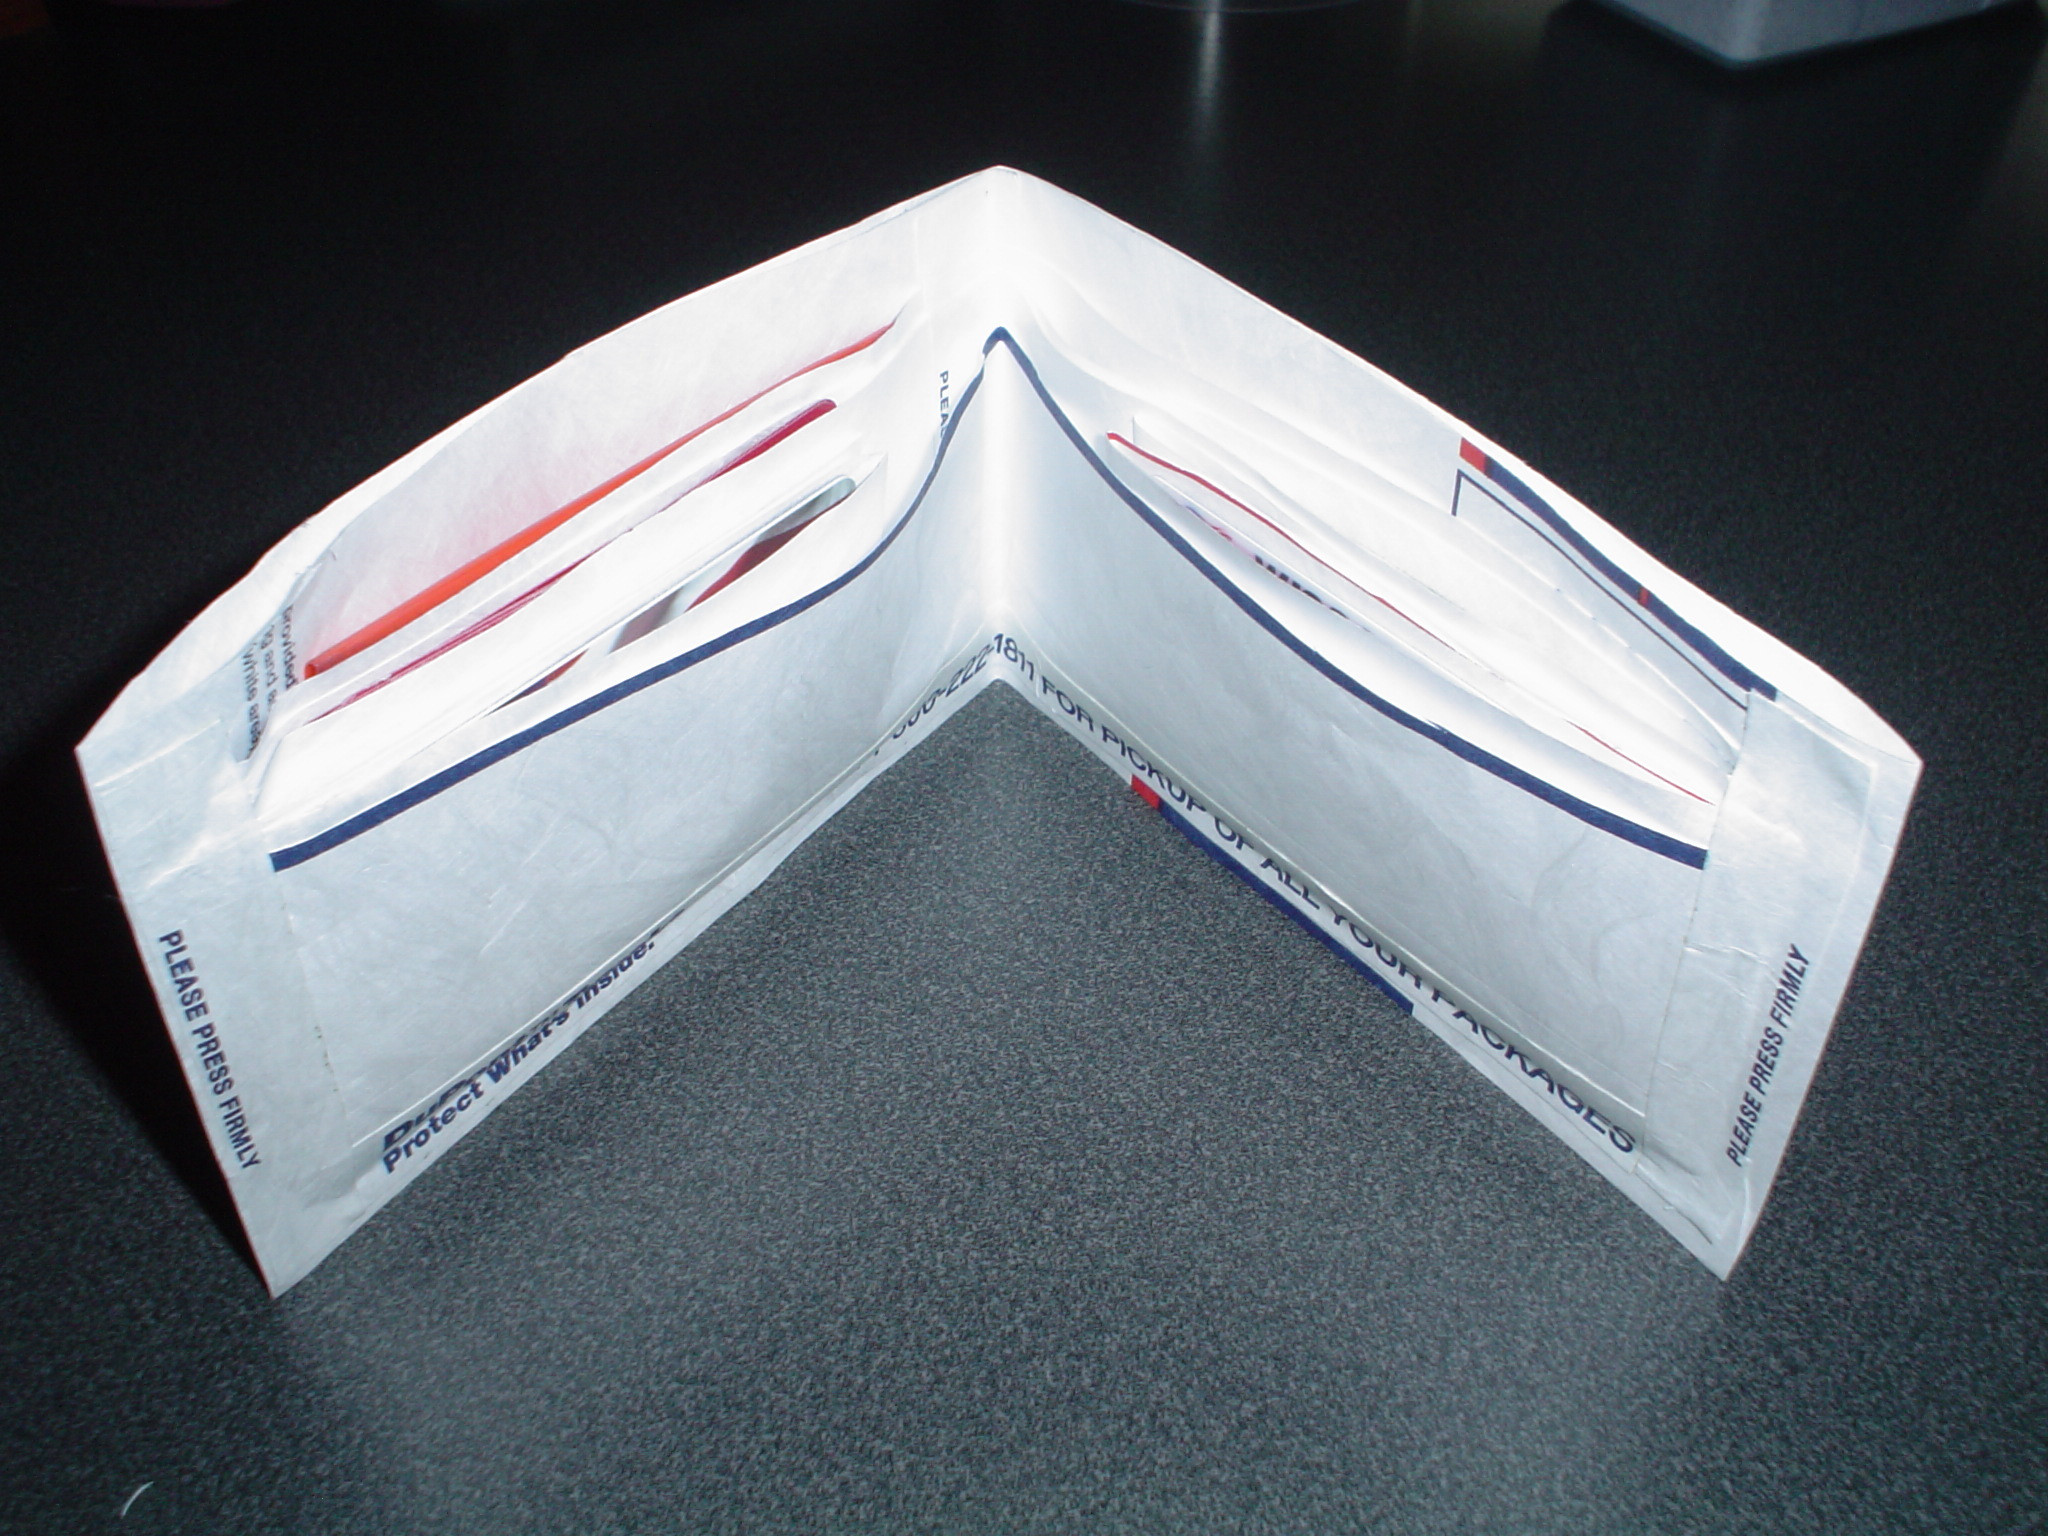 Best ideas about Tyvek Wallet DIY . Save or Pin Wallet made from Tyvek mailing envelope Now.